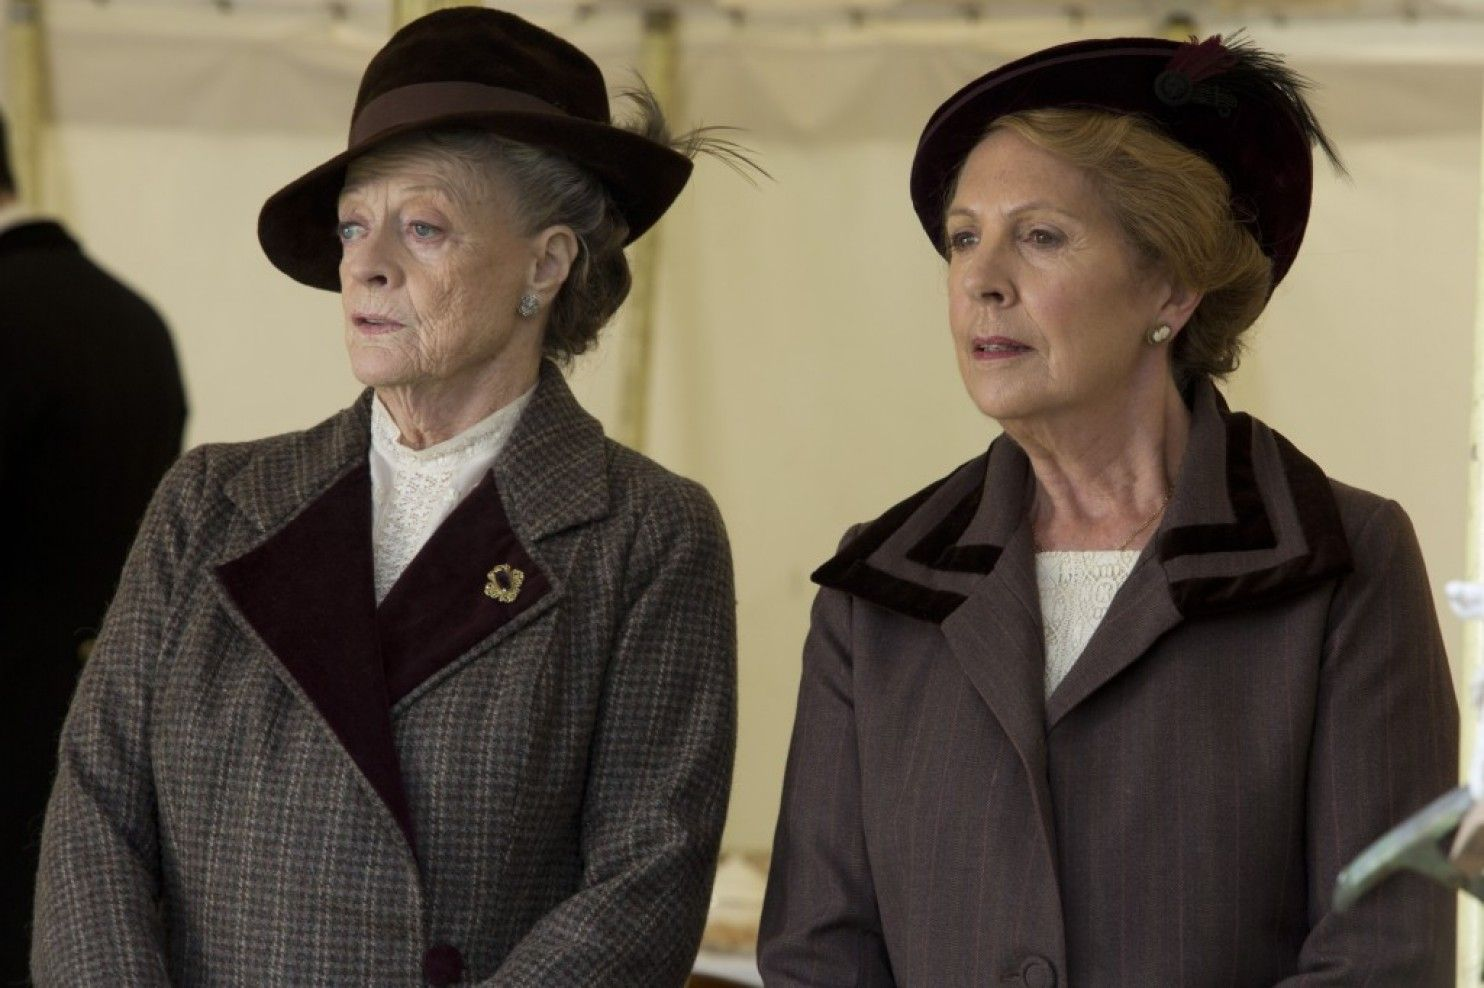 Maggie Smith as Violet, Dowager Countess of Grantham and Penelope Wilton as Isobel Crawley (DA, 2/8/15)